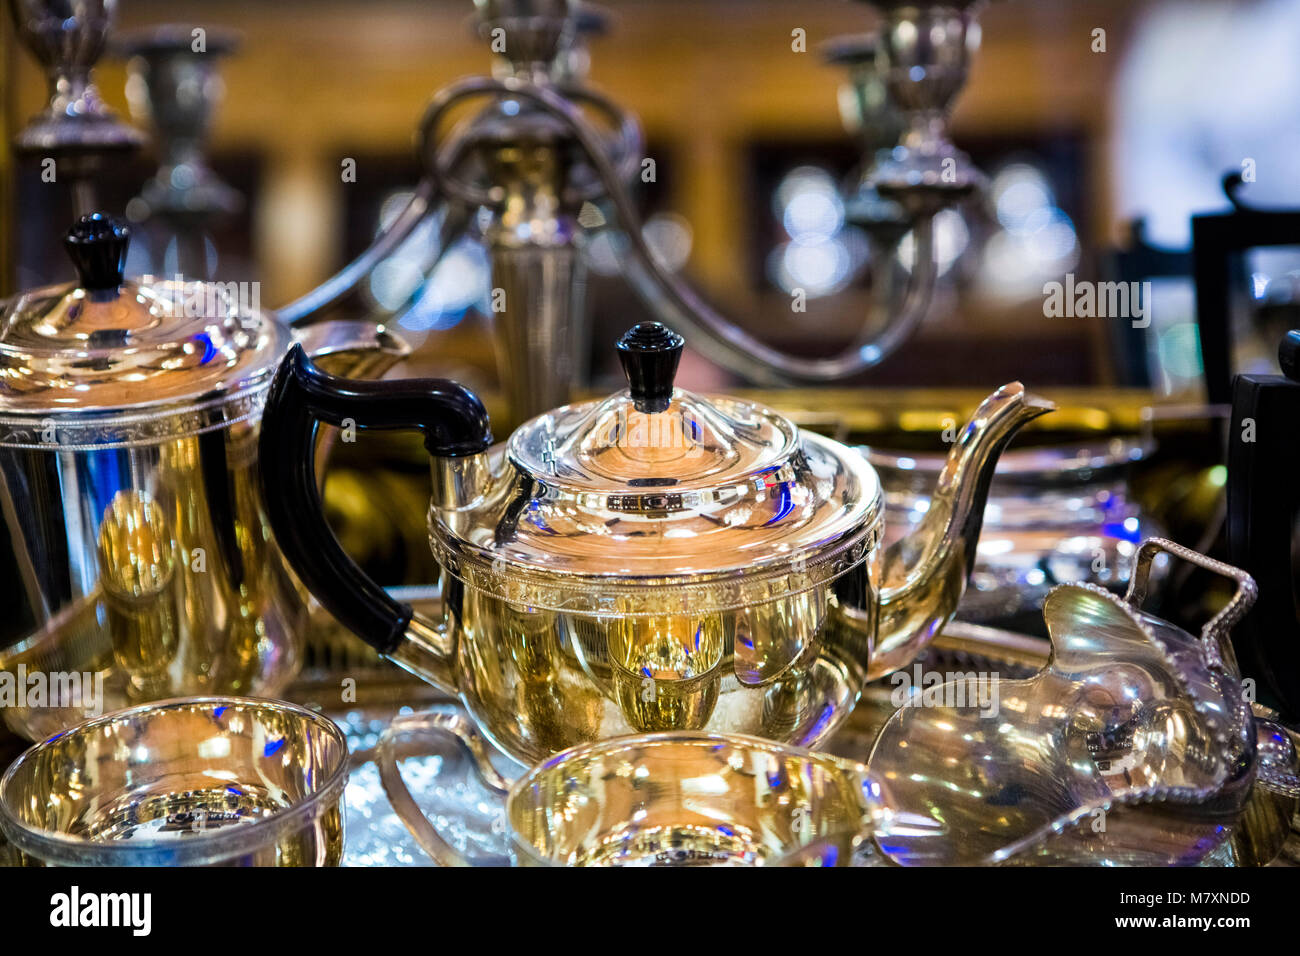 Vintage silver teaset in antiques store. - Stock Image